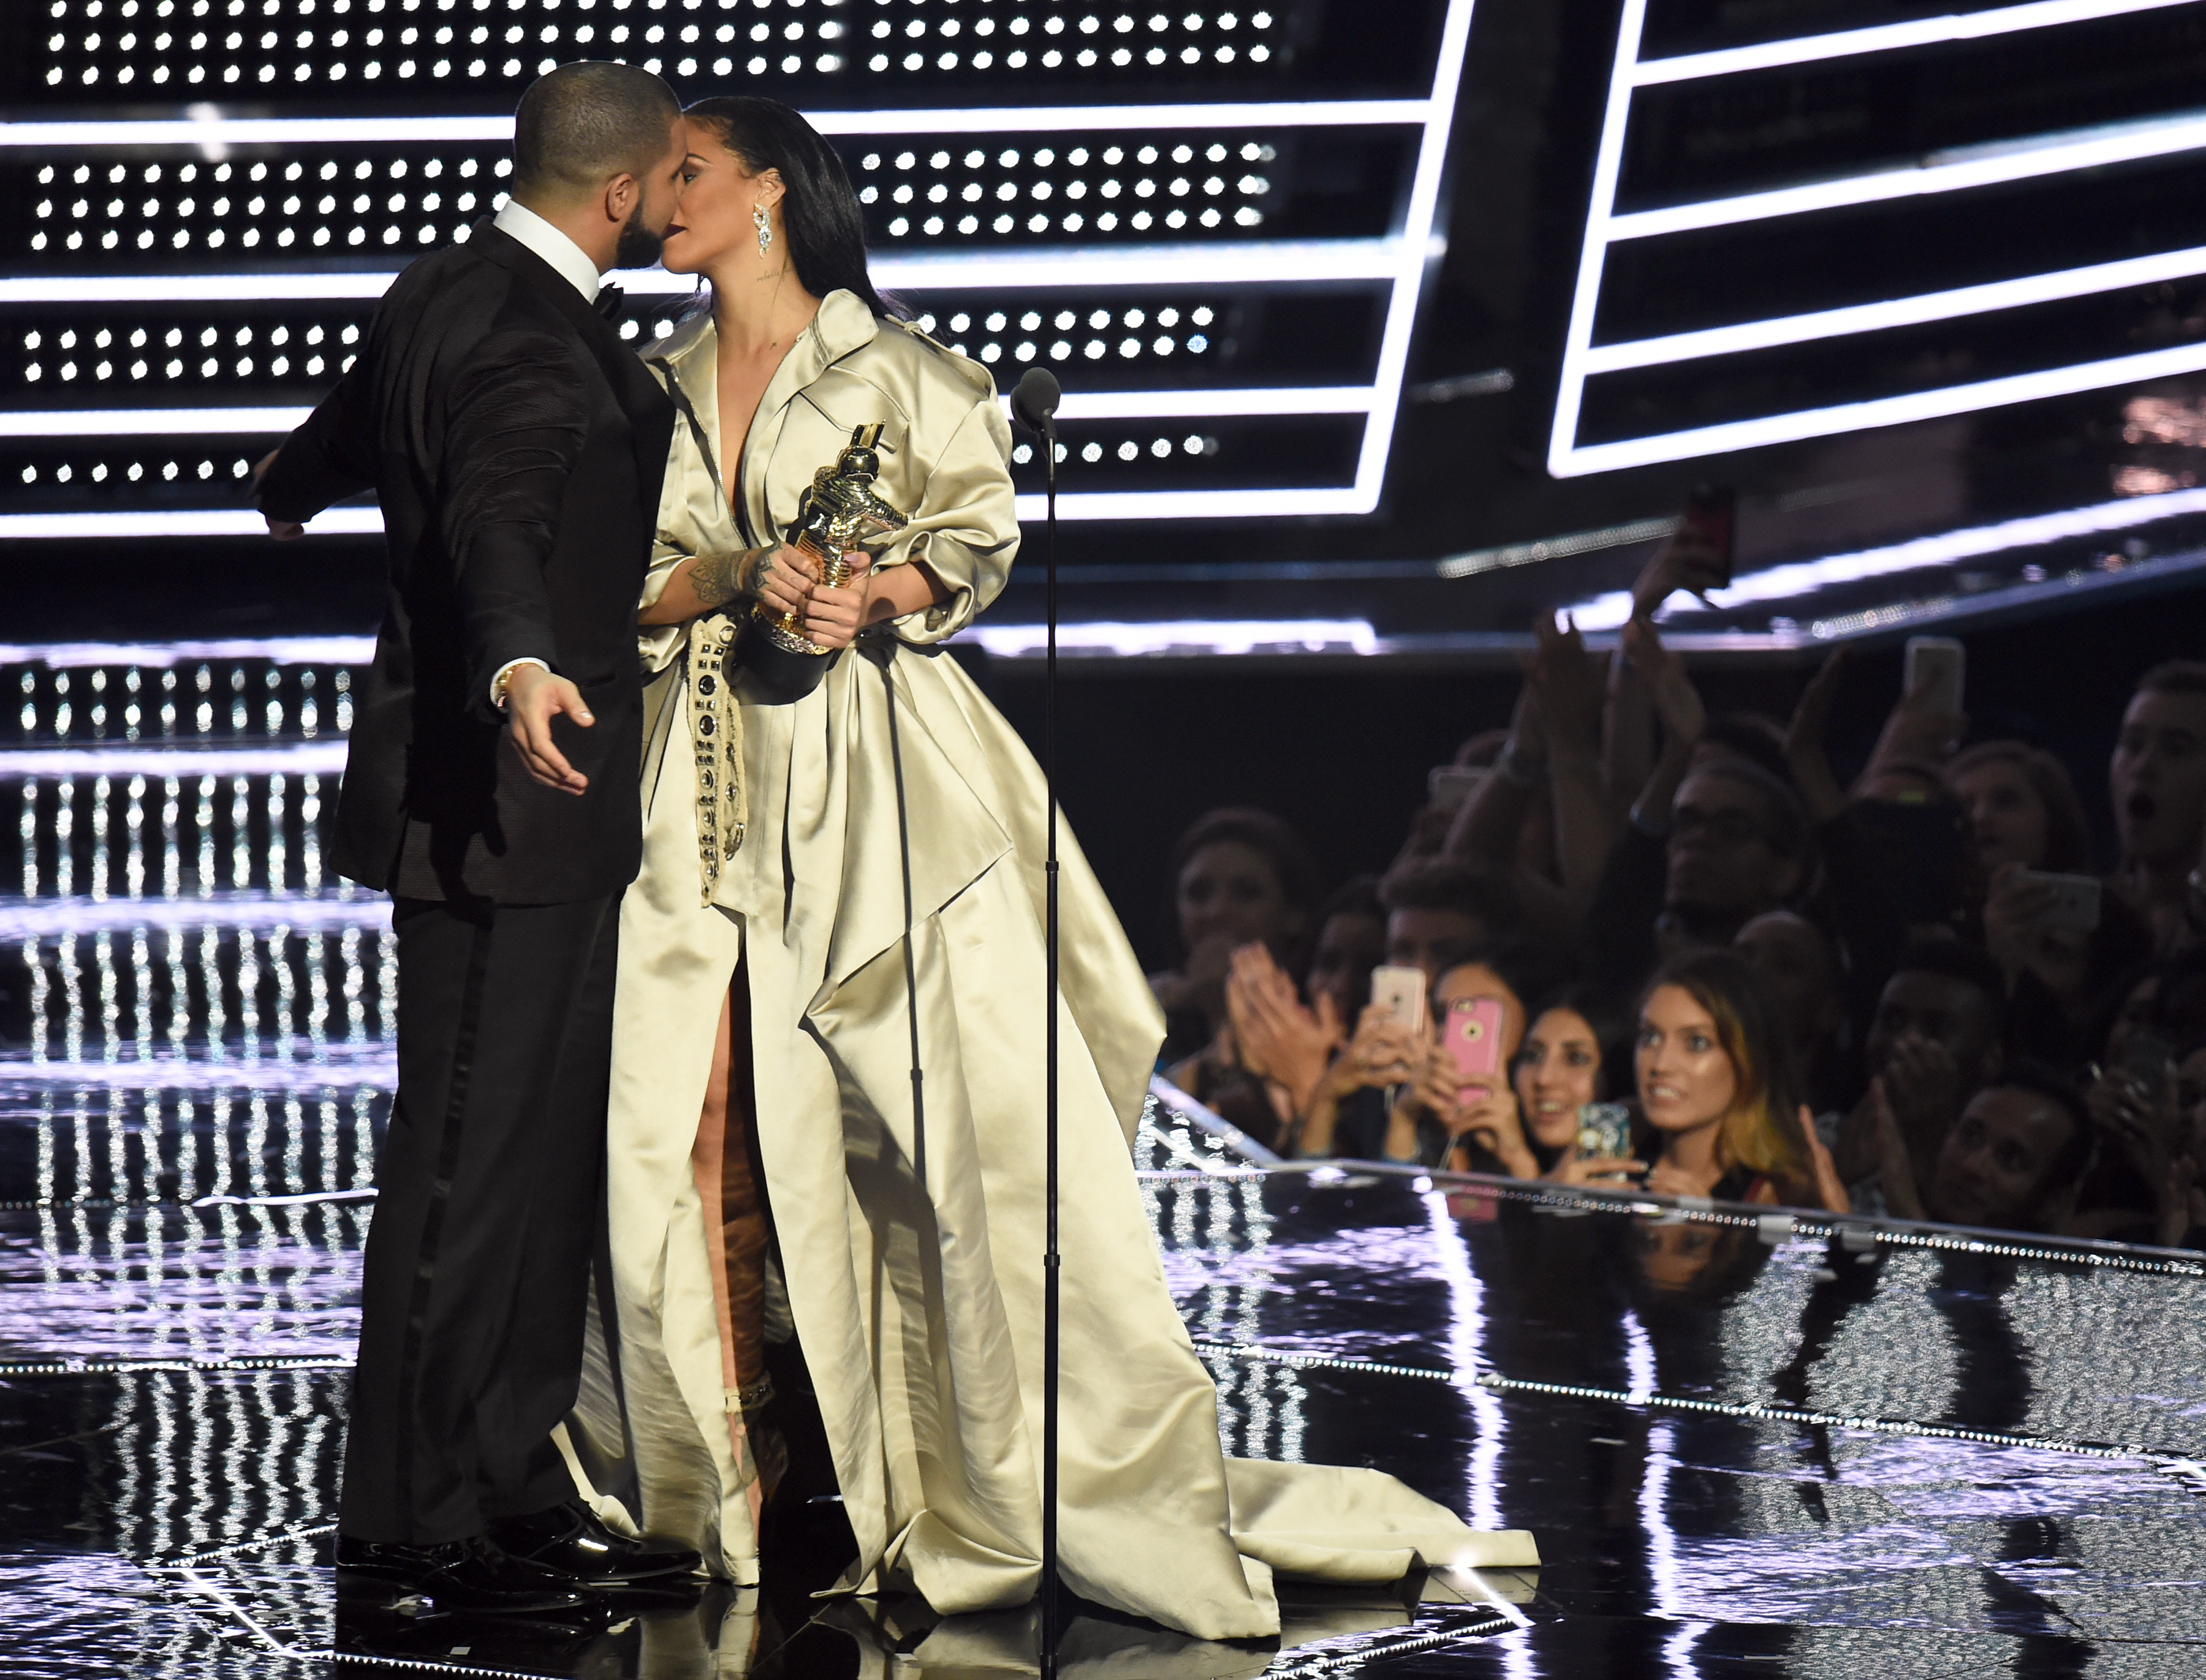 Drake presents Rihanna with the The Video Vanguard Award during the 2016 MTV Video Music Awards at Madison Square Garden on August 28, 2016 in New York City.